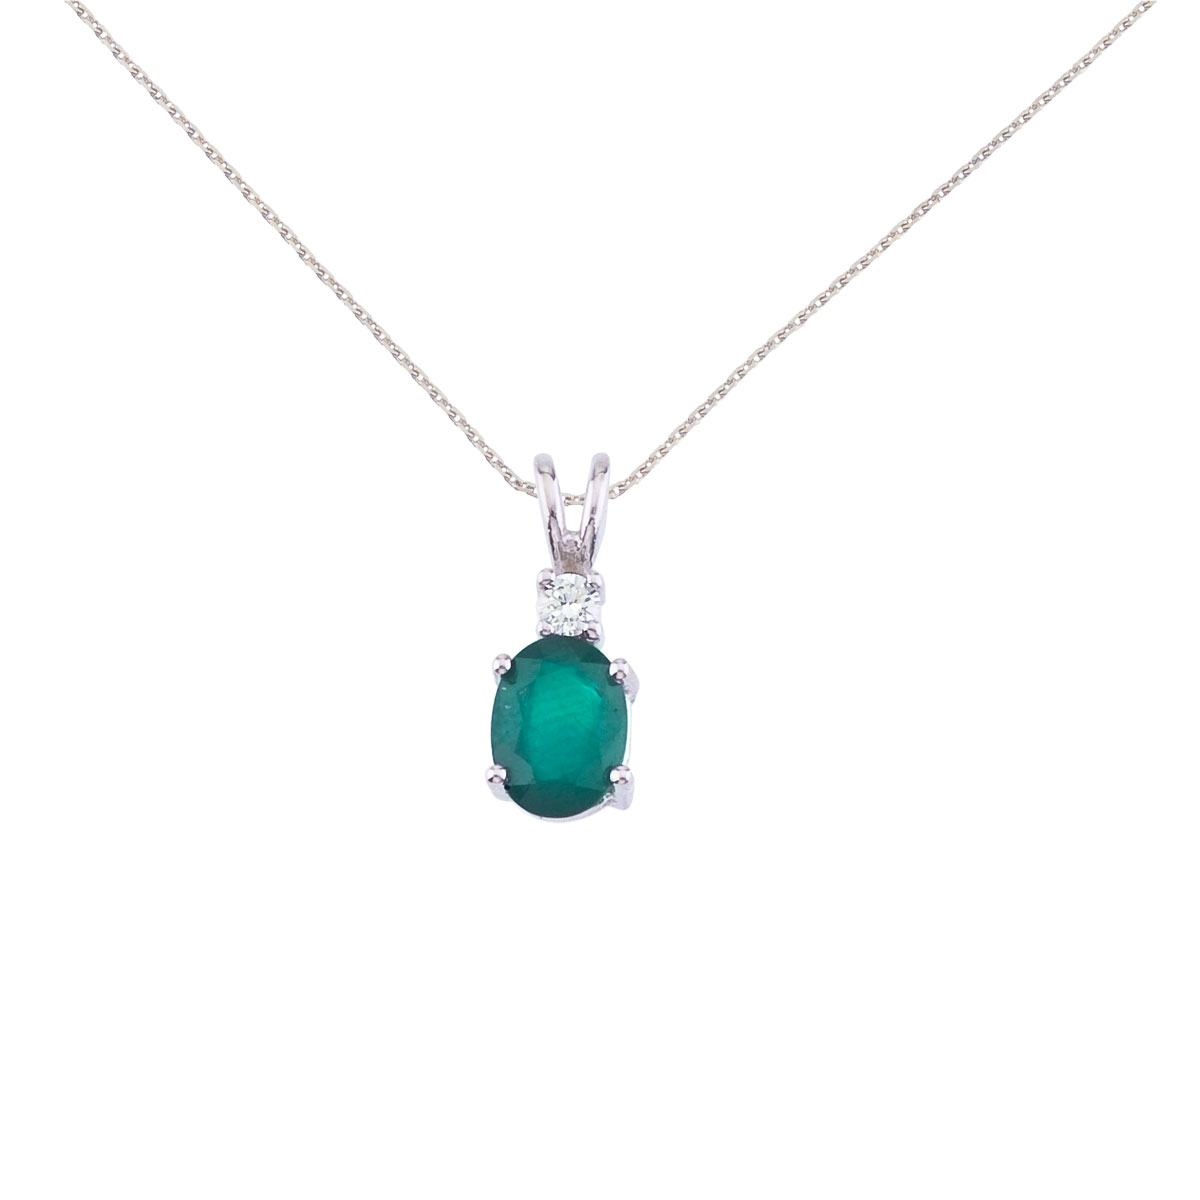 7x5 mm natural emerald and diamond pendant set in 14k white gold.